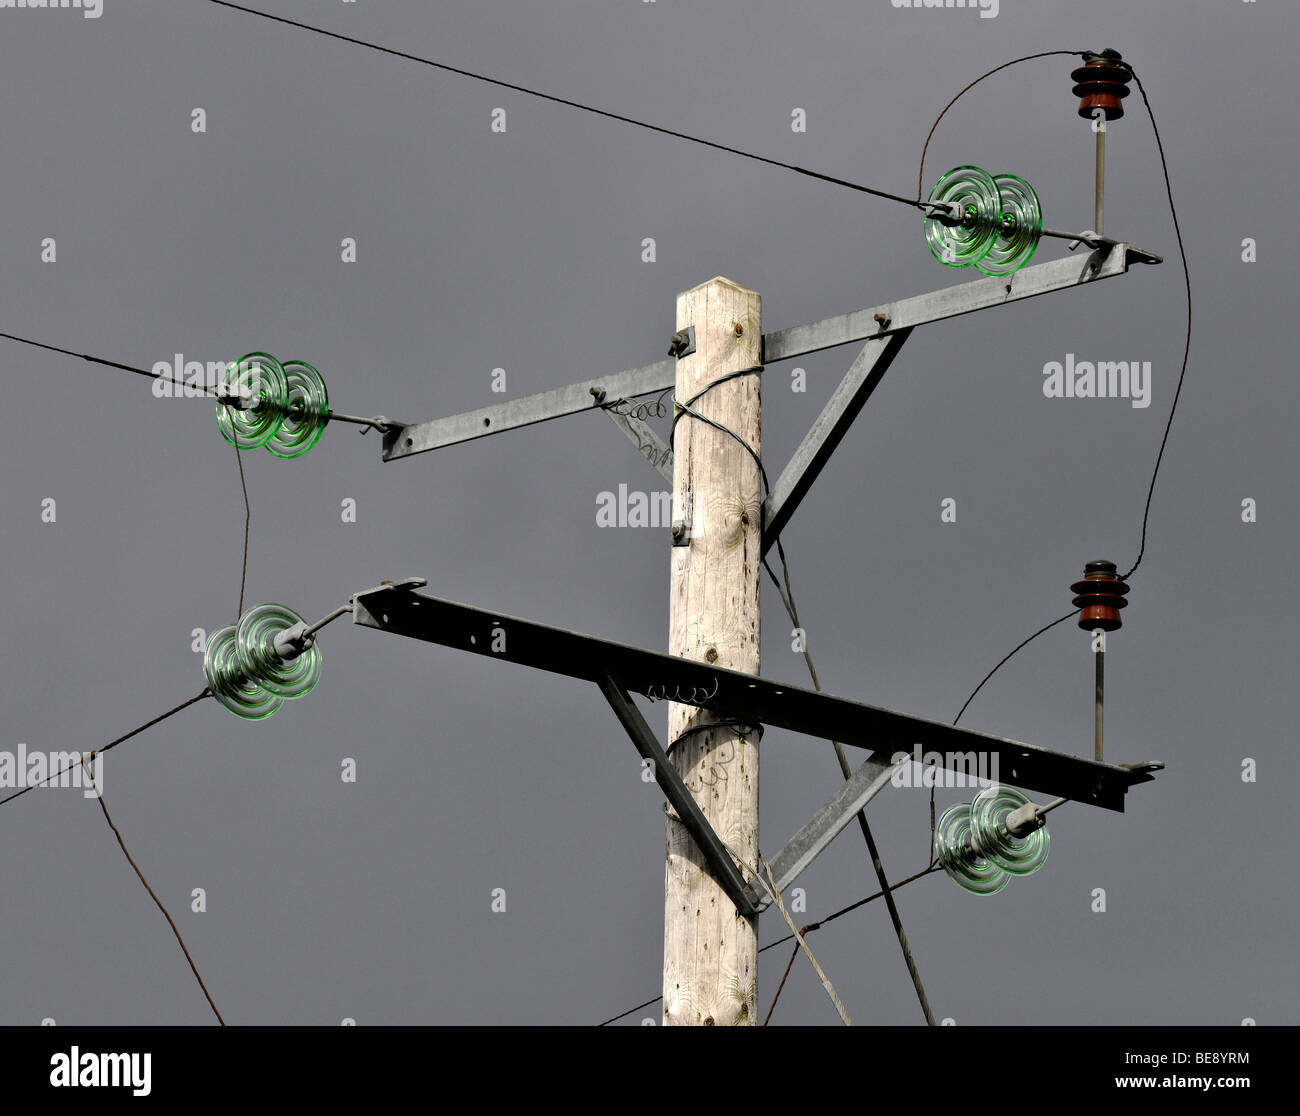 Electricity Power Cables Stockfotos & Electricity Power Cables ...